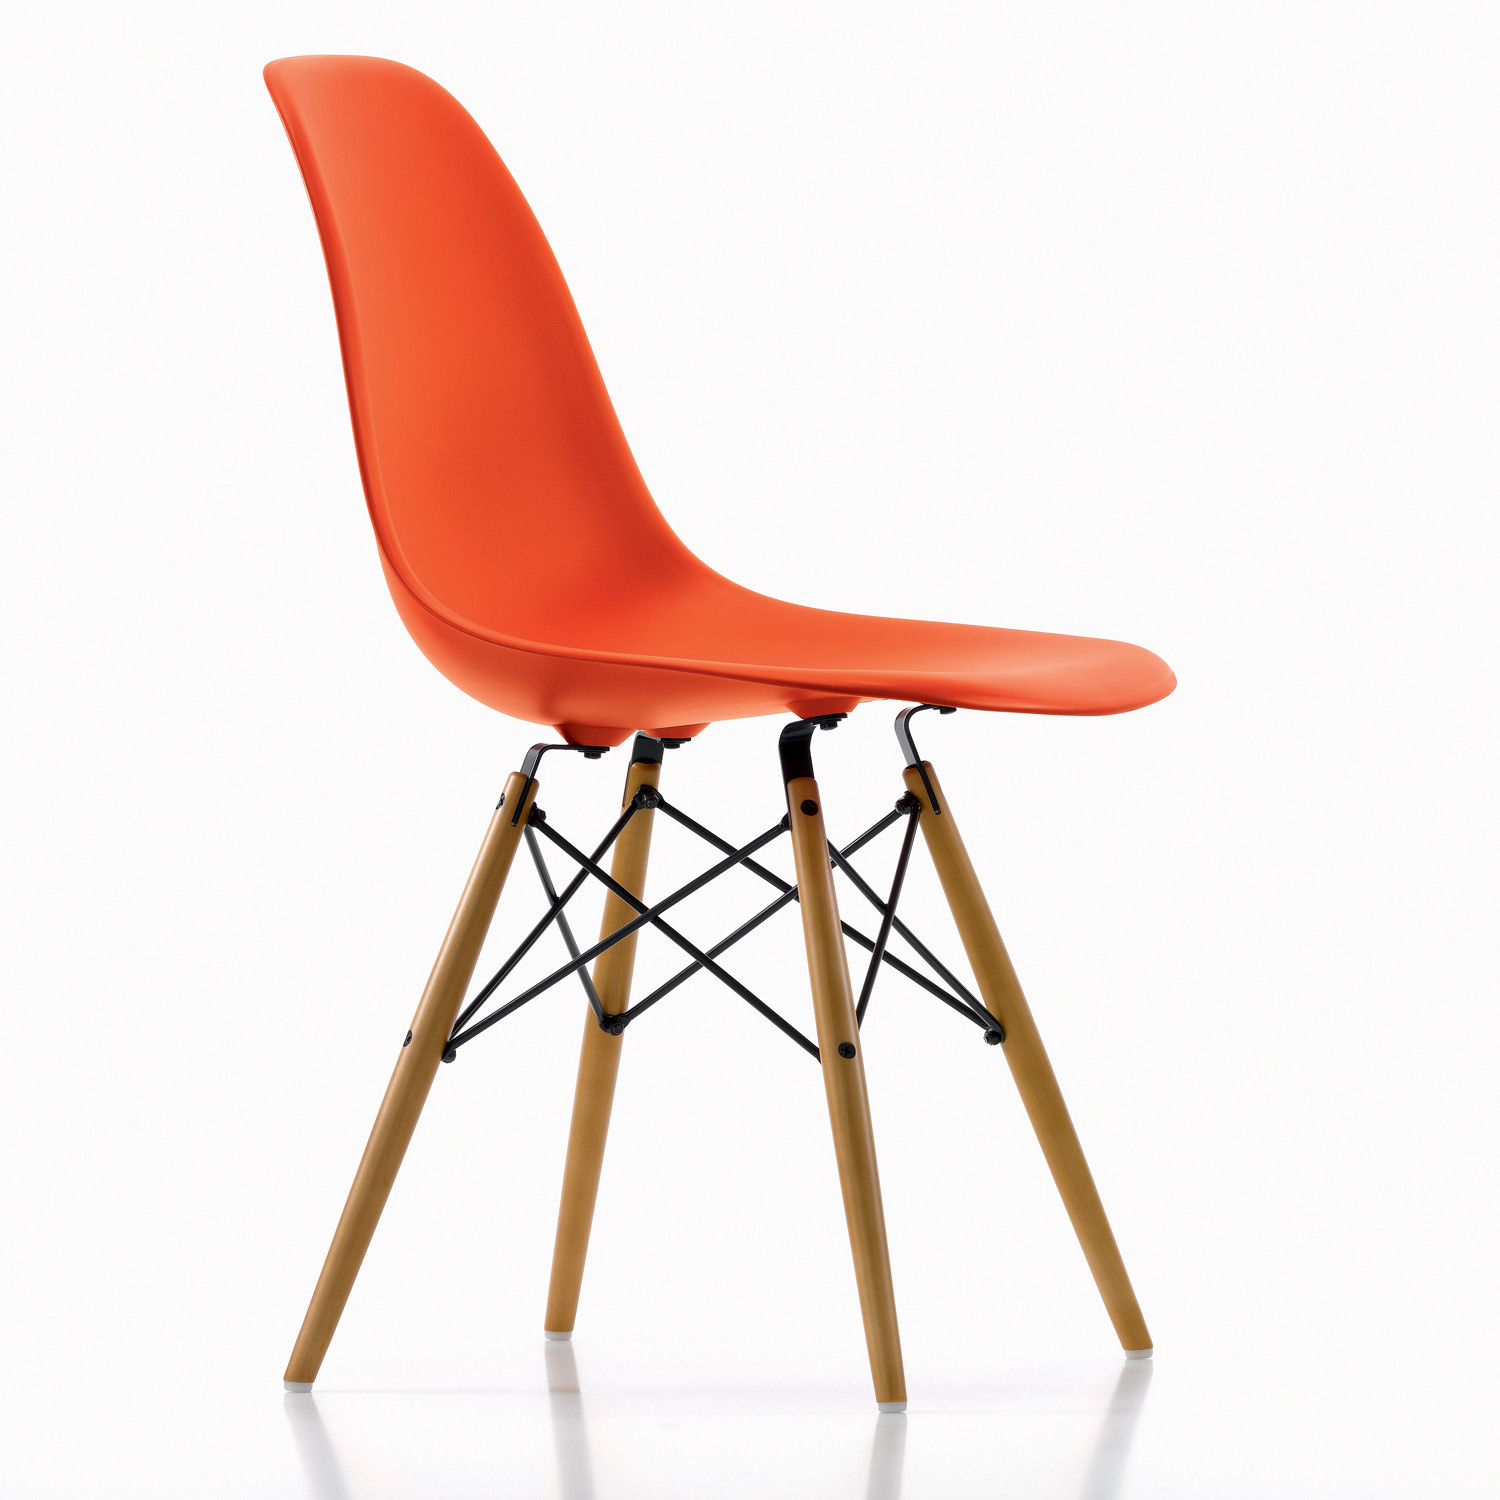 dsw eames plastic side chairs cafe breakout chairs apres furniture. Black Bedroom Furniture Sets. Home Design Ideas